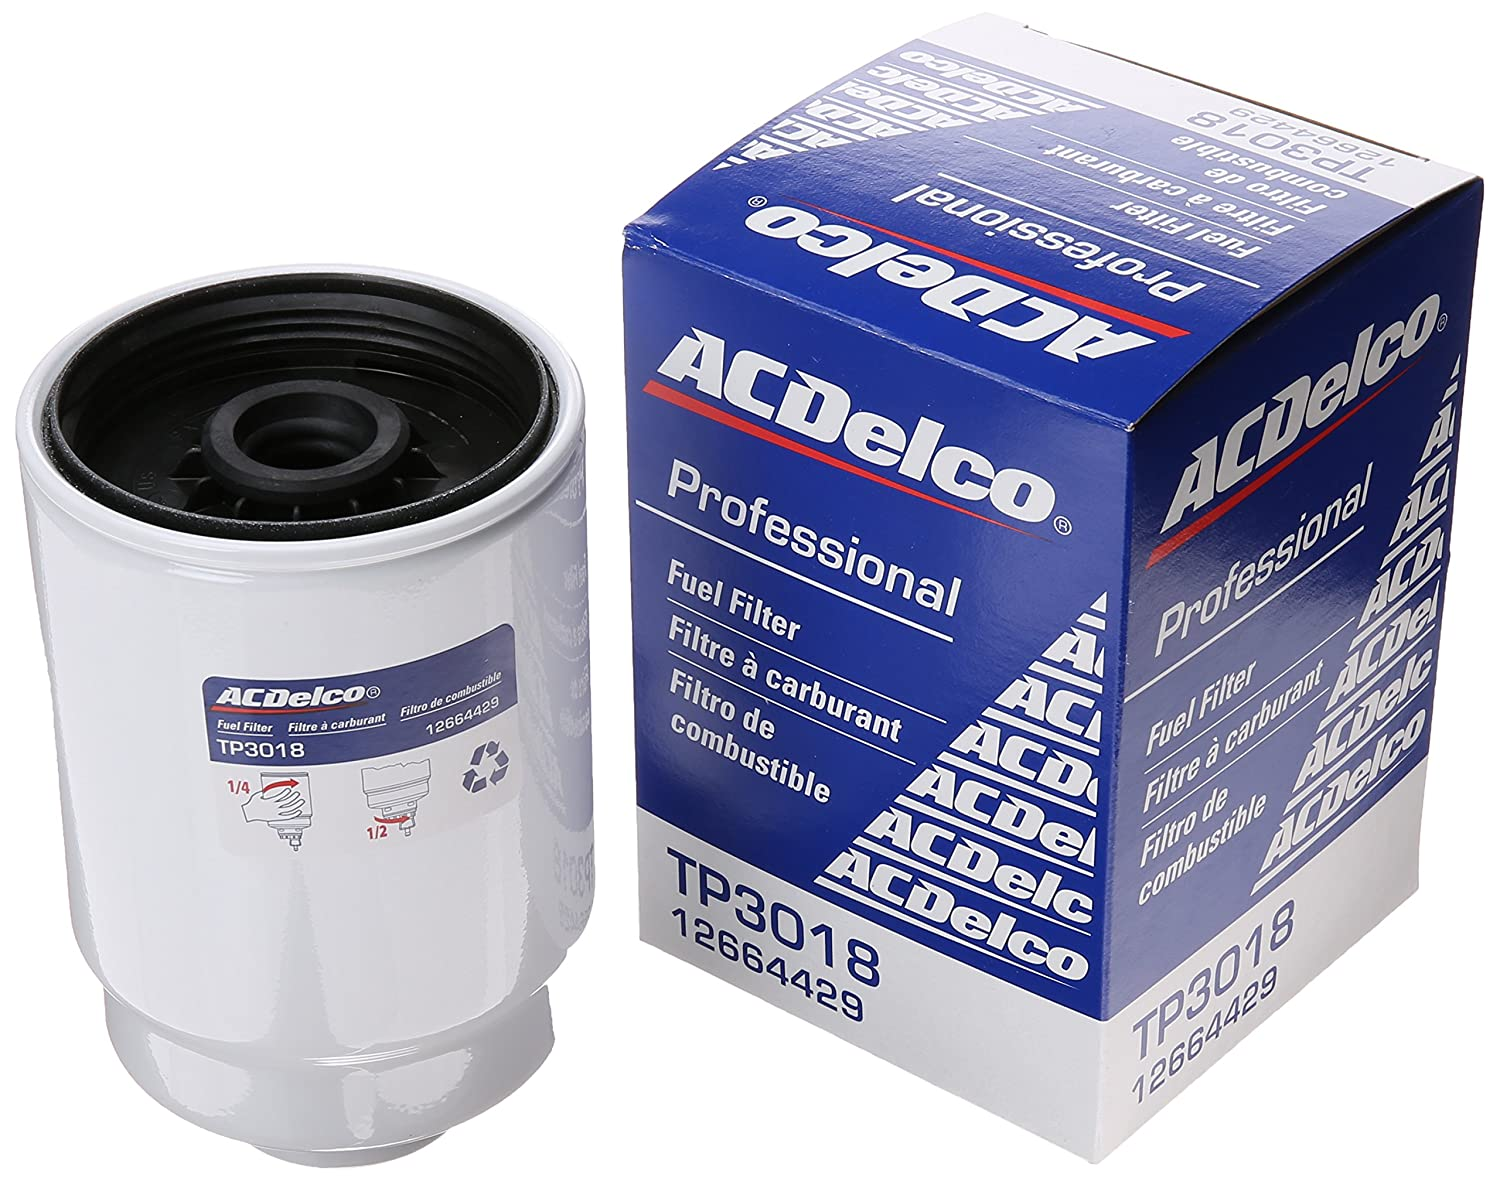 Fuel Filters Replacement Parts Automotive 1995 Ford F 350 7 3 Filter Location Acdelco Tp3018 Professional With Seals